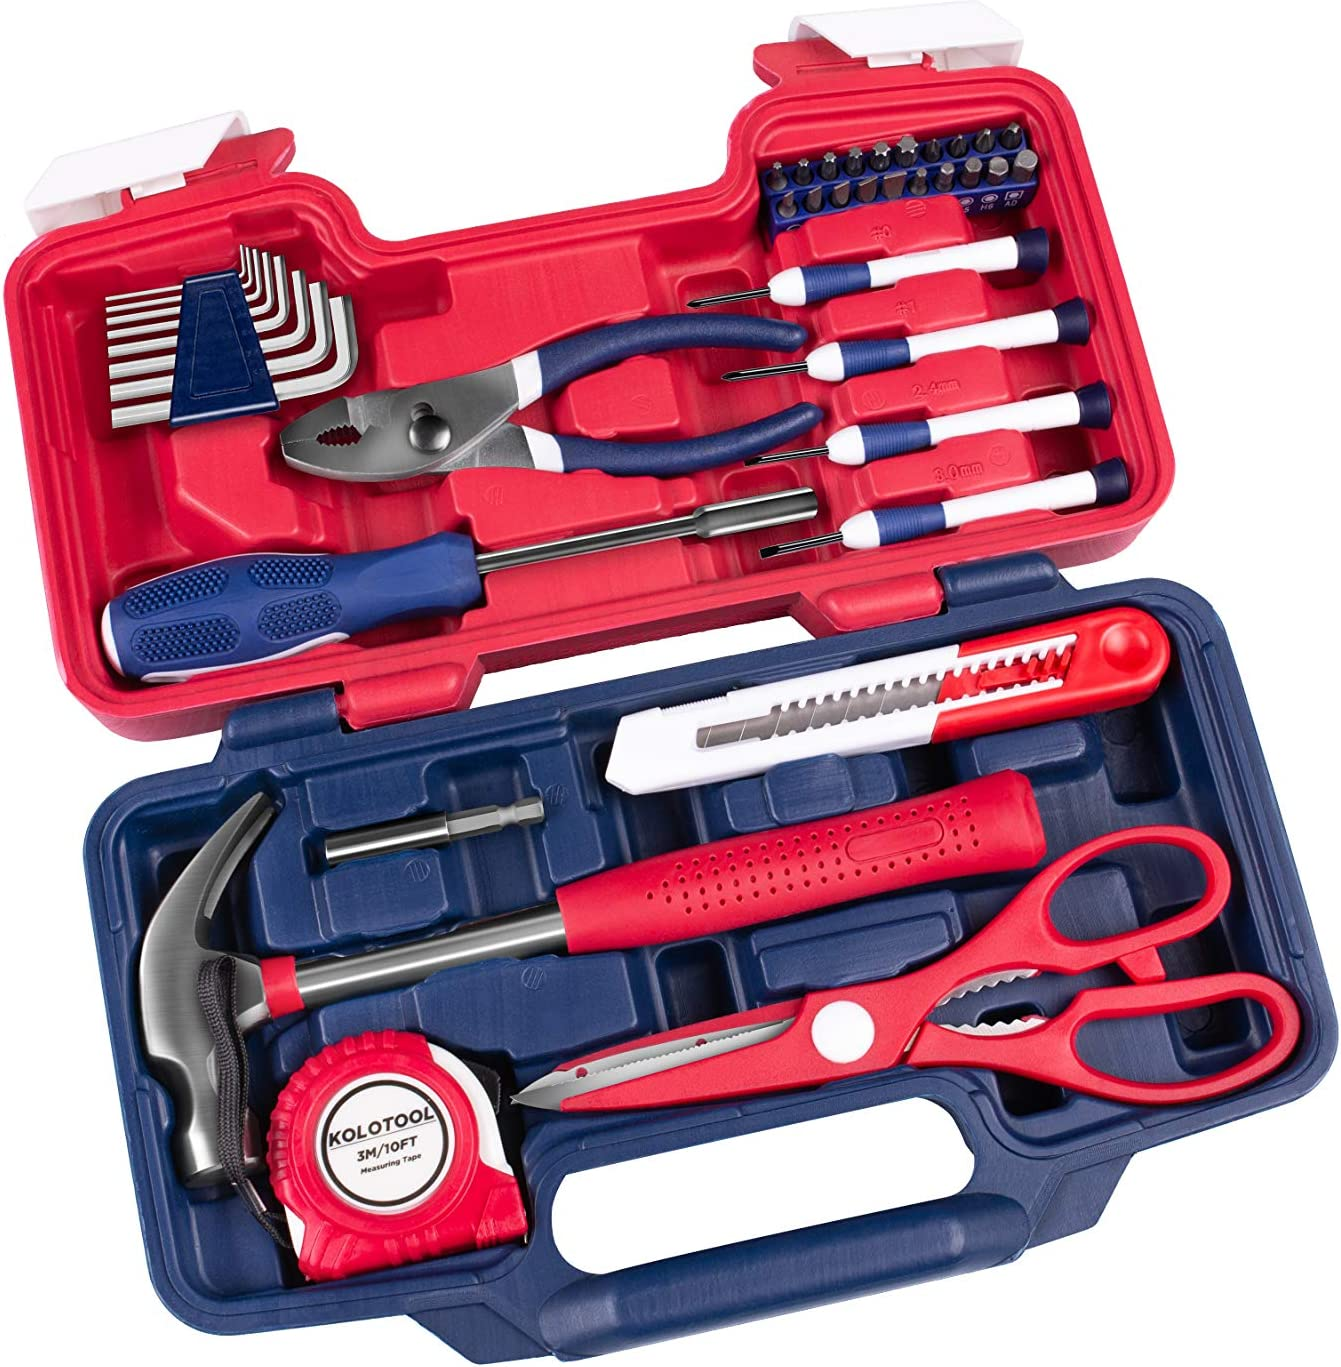 KOLOTOOL 39-Piece Portable Household Repair Hand Tool Set with Case Patriot Edition (Red)